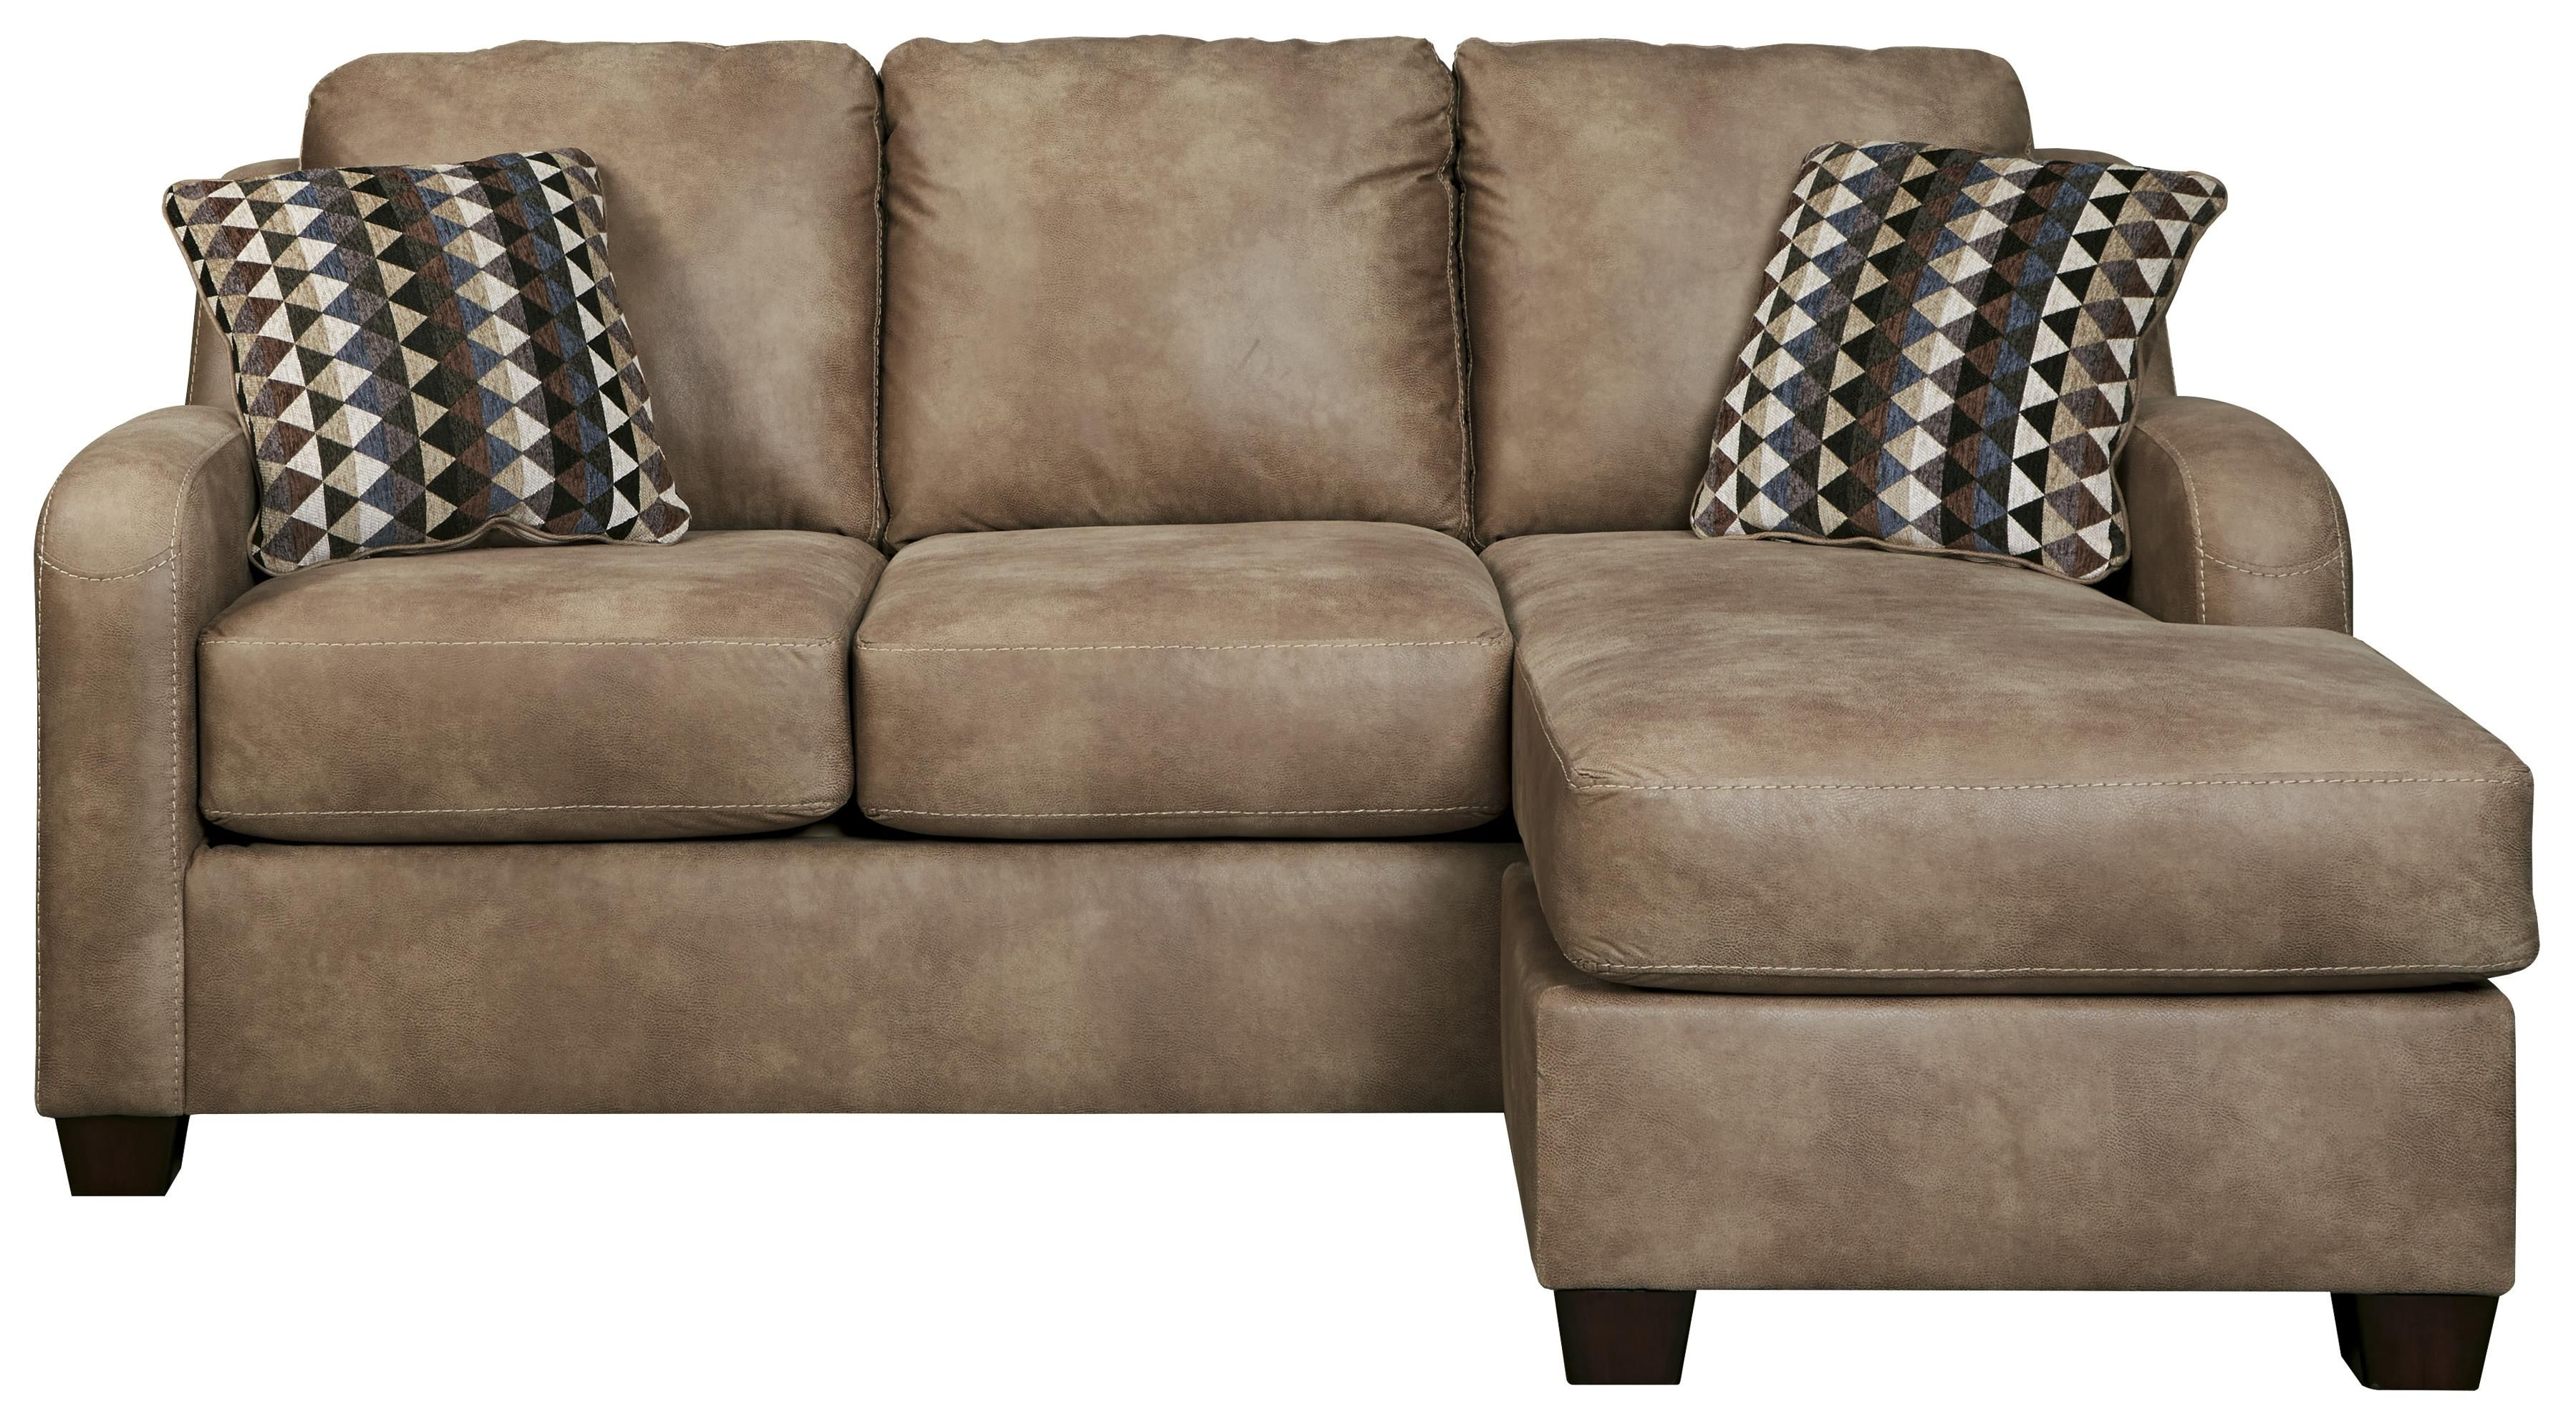 Benchcraft Leather Sofa In 2020 Leather Corner Sofa Faux